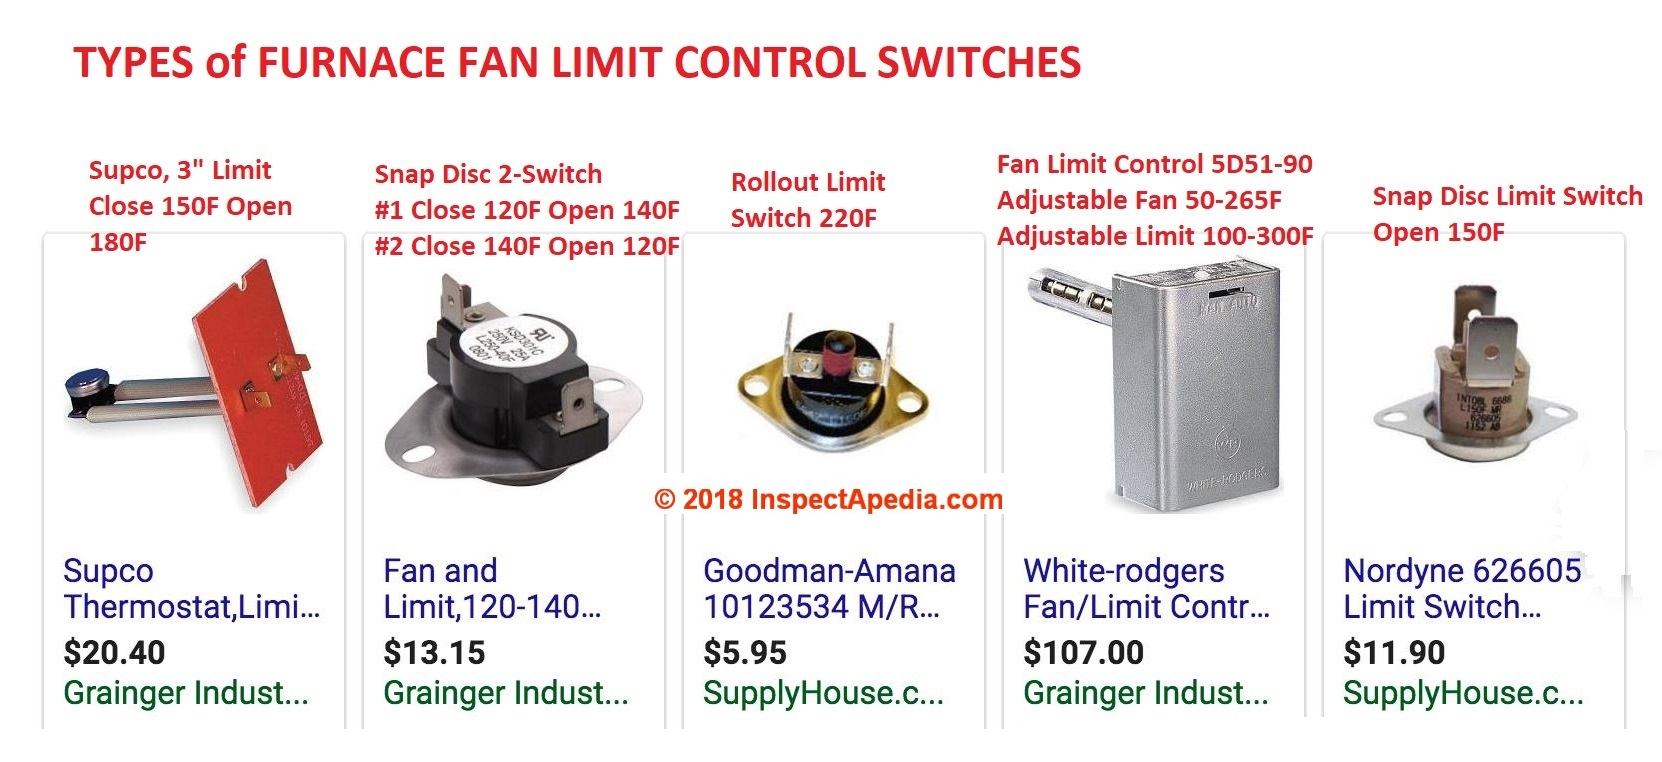 Furnace Fan Limit Switch How Does A Fan Limit Switch Work